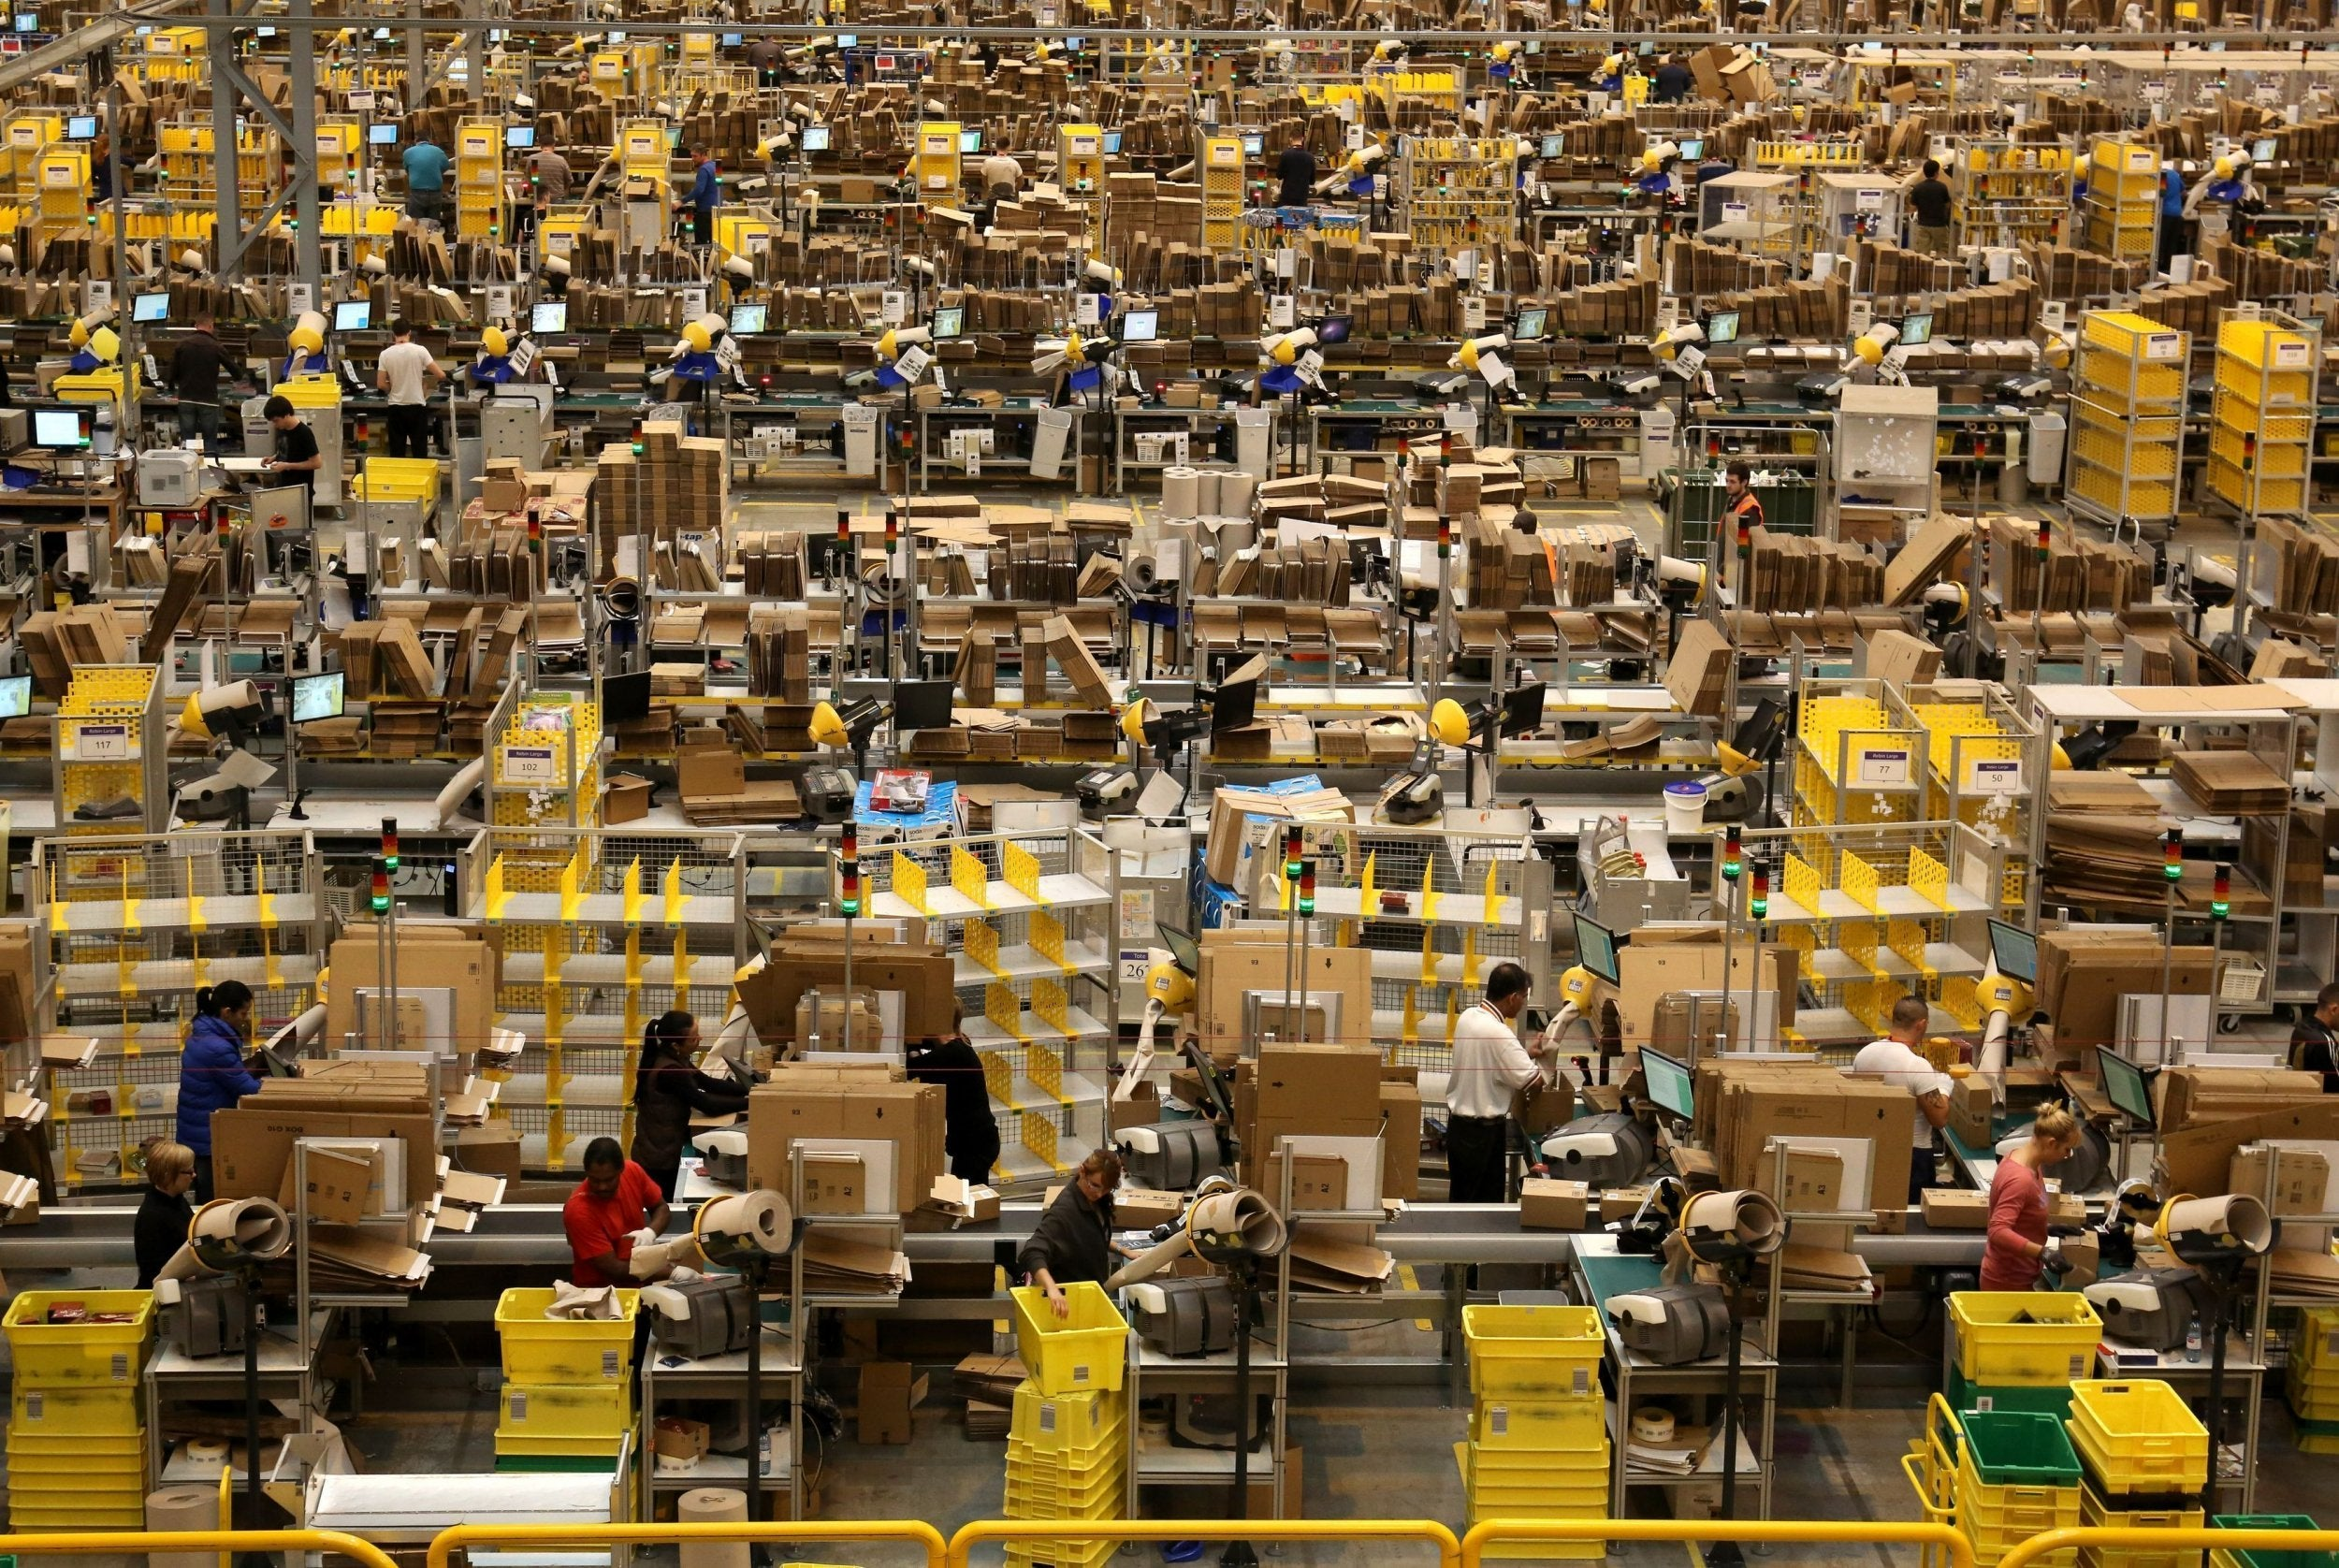 Amazon Workers Report 440 Serious Safety Incidents